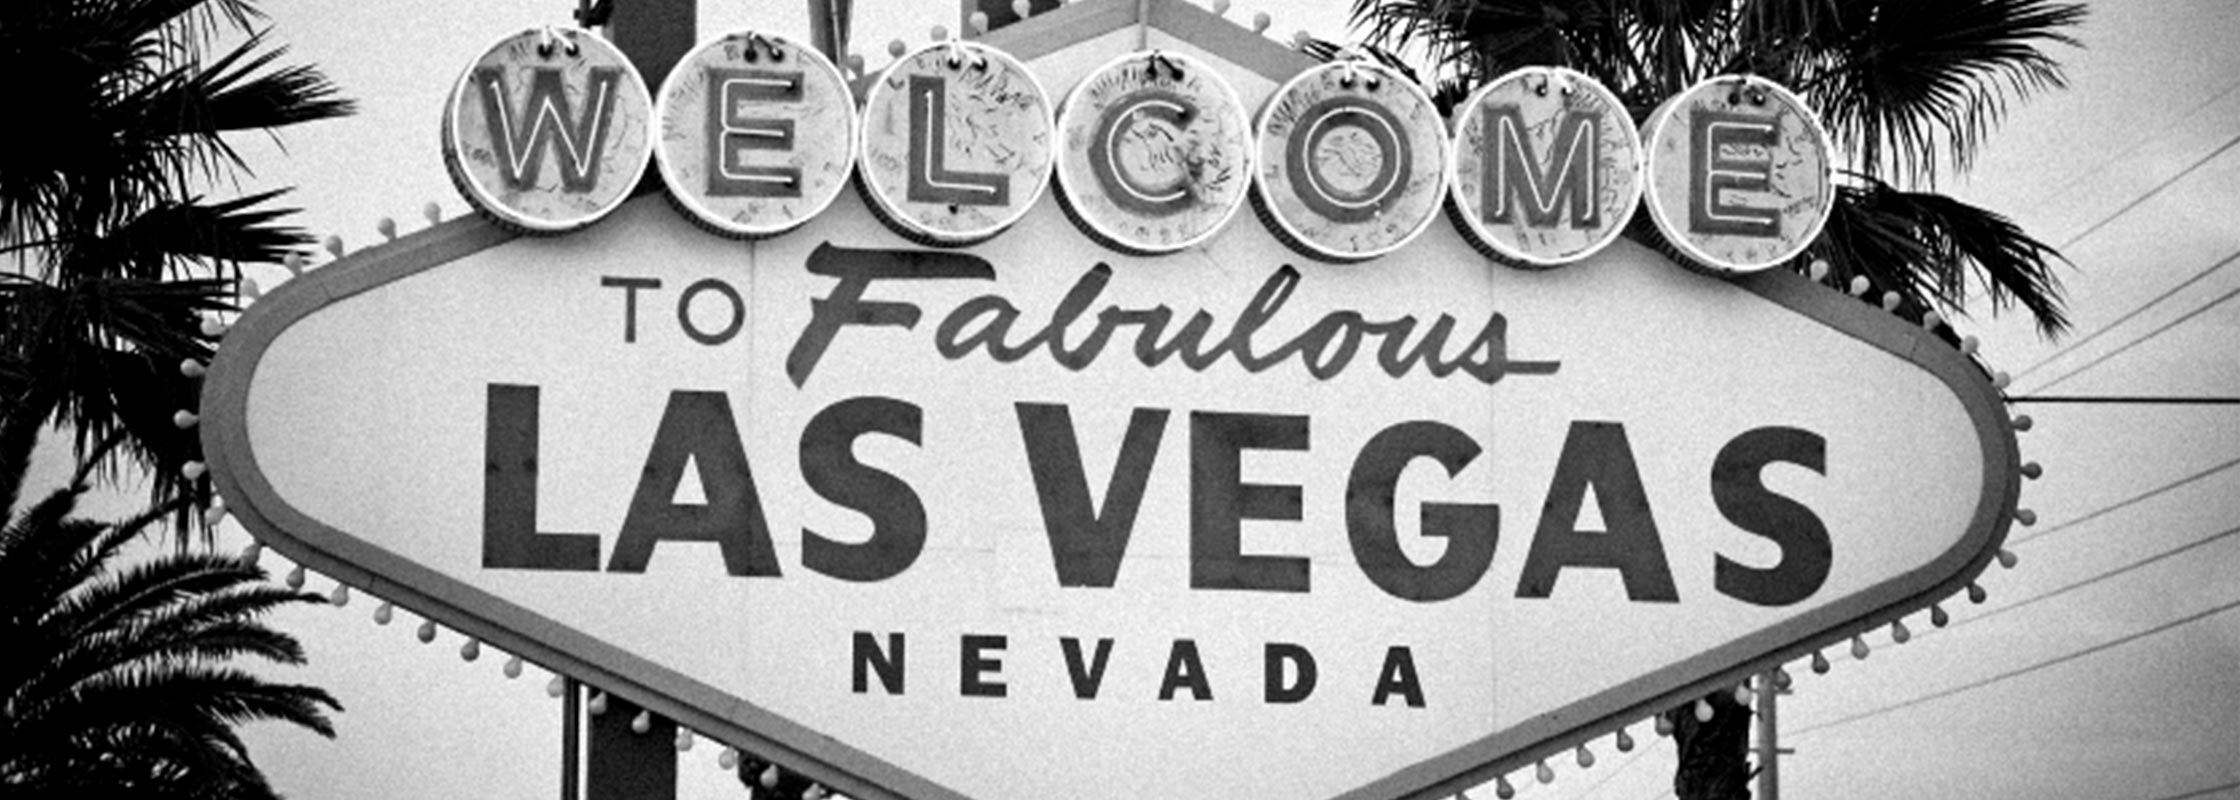 Welcome to Las Vegas Iconic Sign